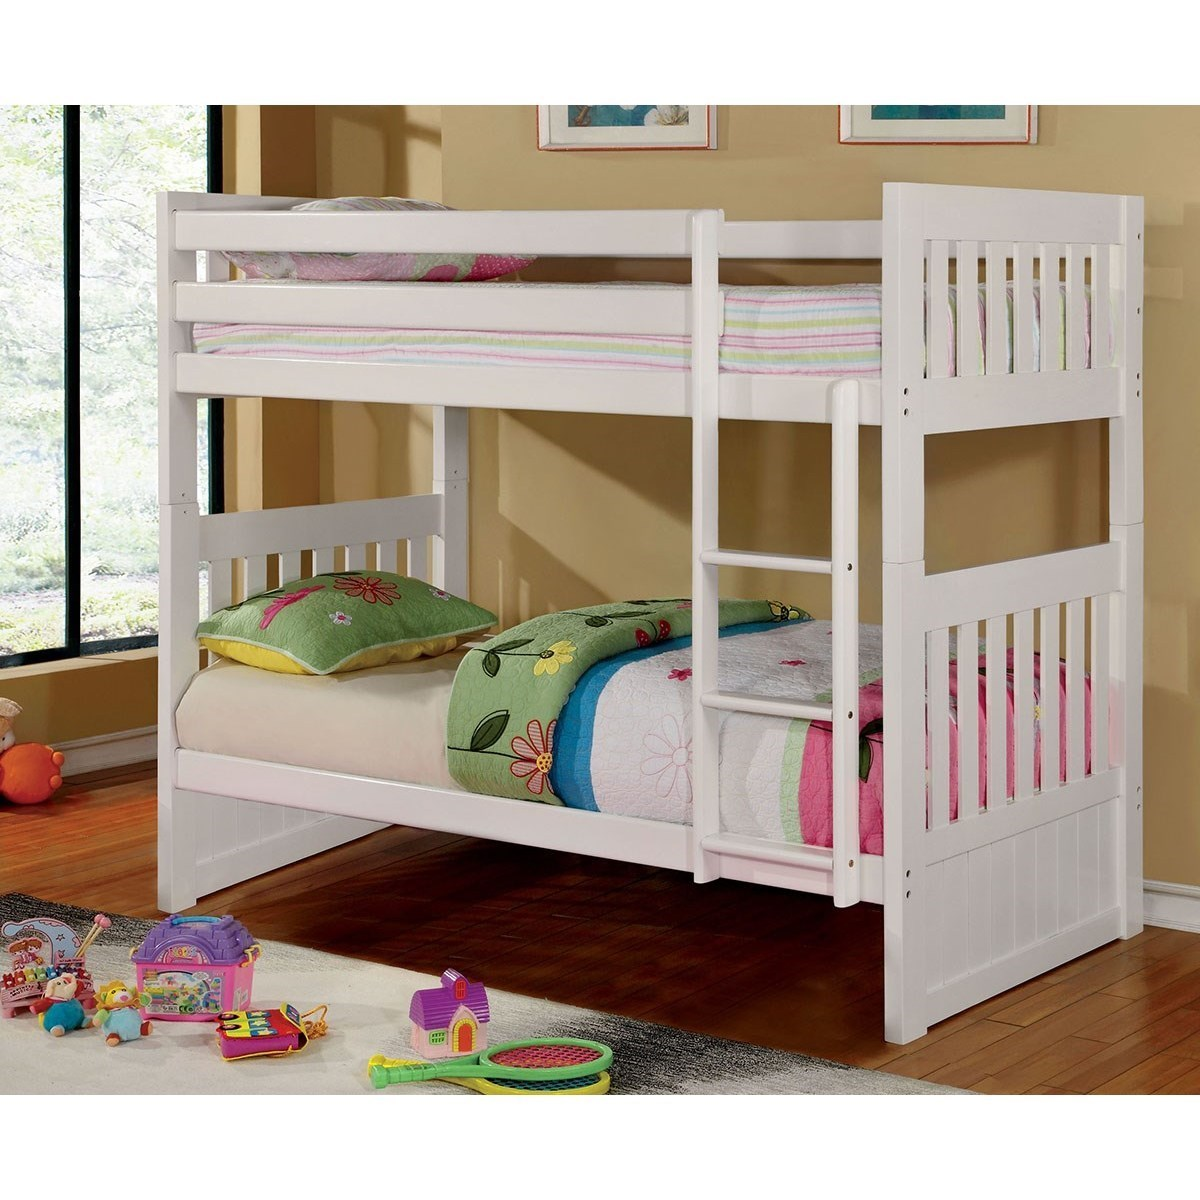 Furniture Stores Canberra Canberra Ii Mission Twin Full Bunk Bed By Furniture Of America At Del Sol Furniture